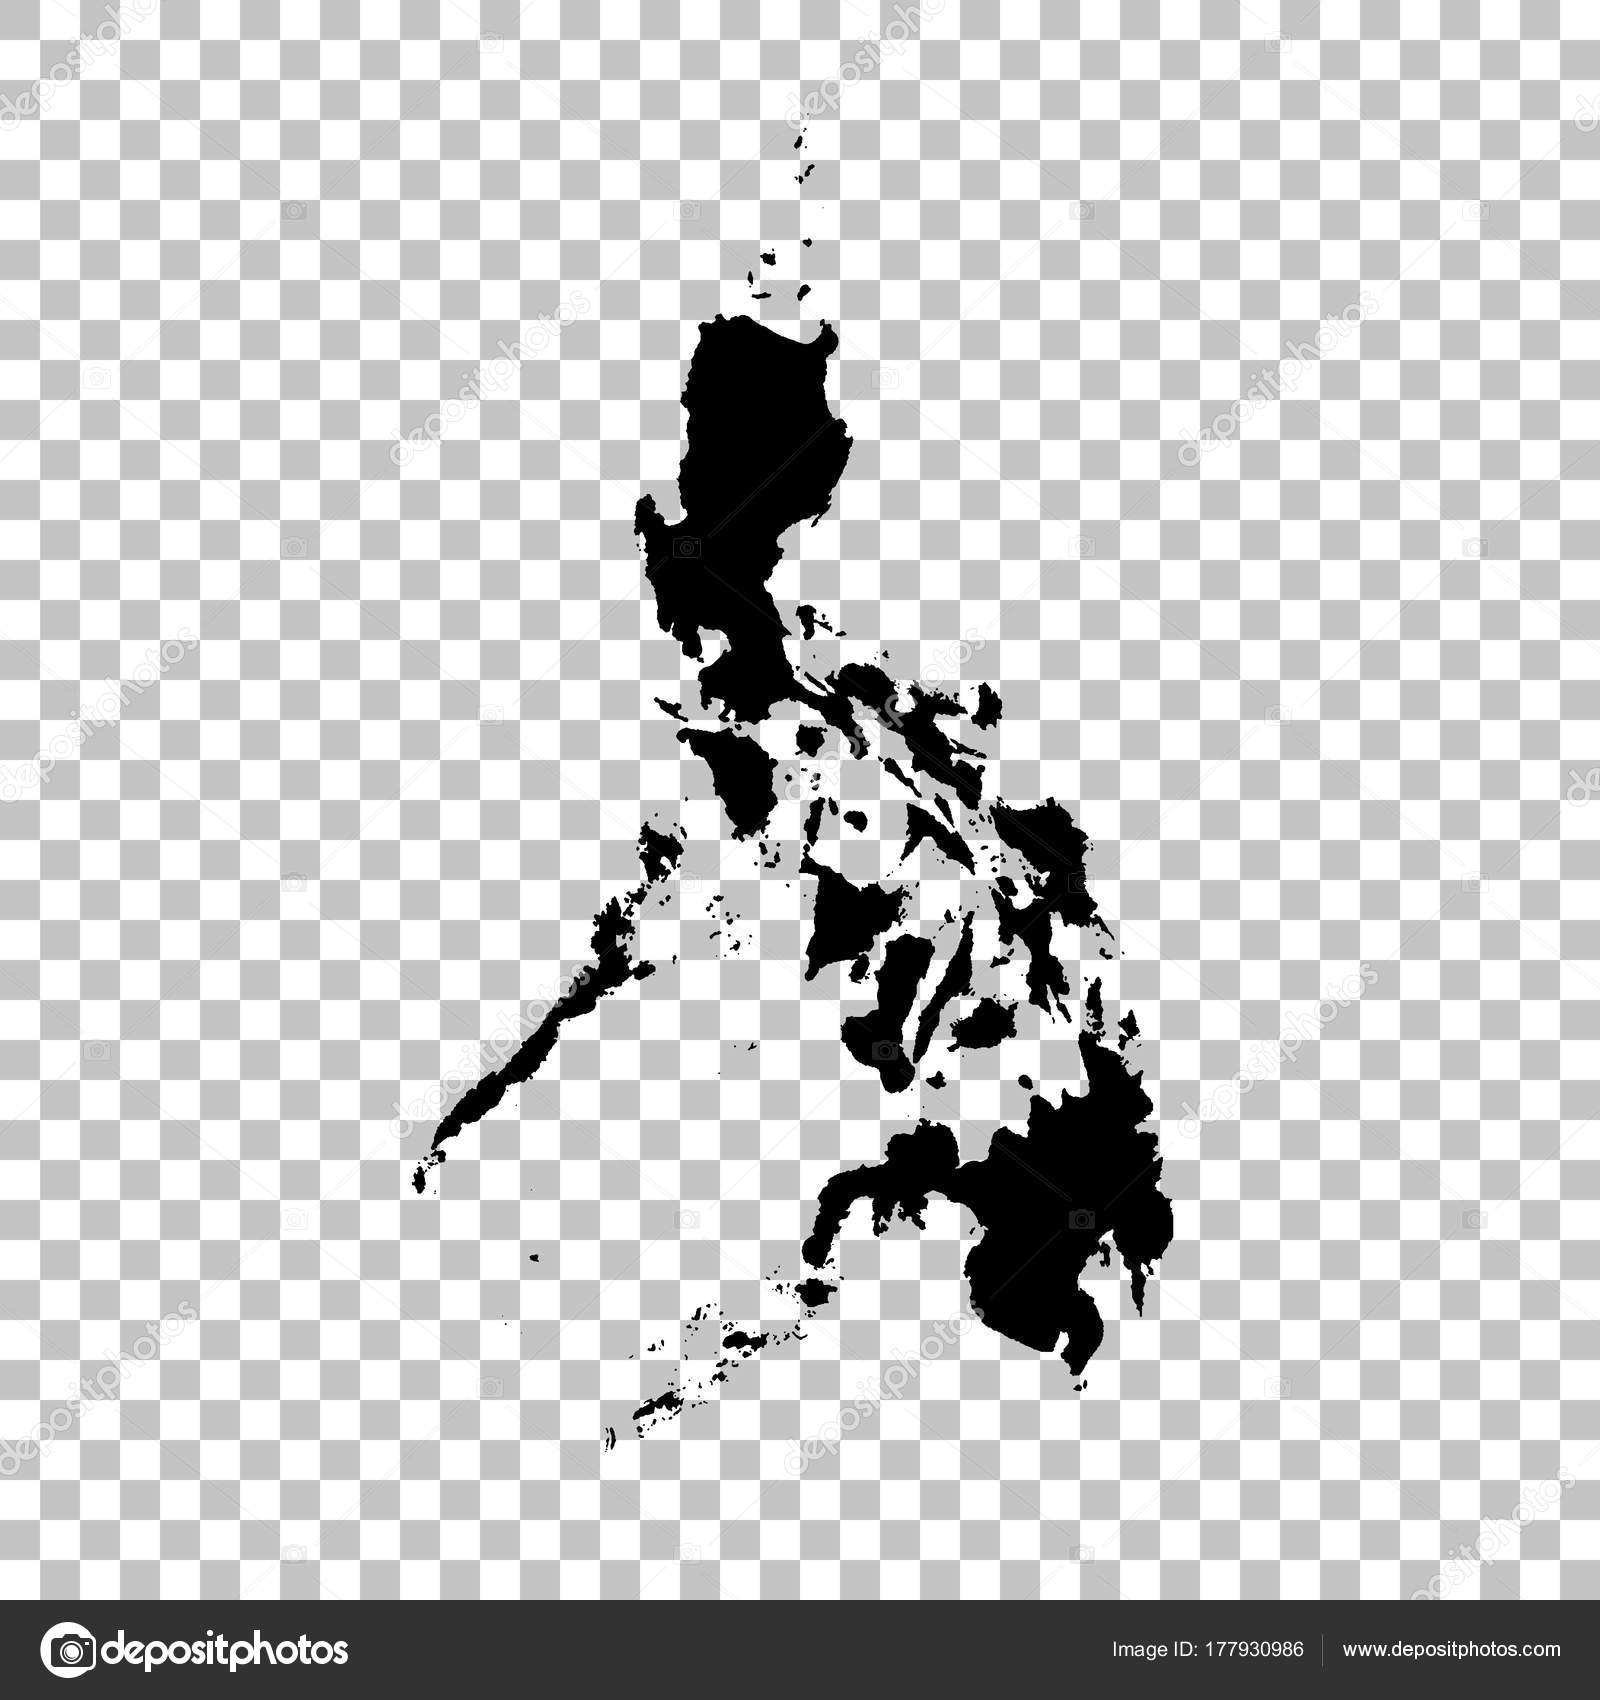 Philippines Map Black And White.Vector Map Philippines Isolated Vector Illustration Black White